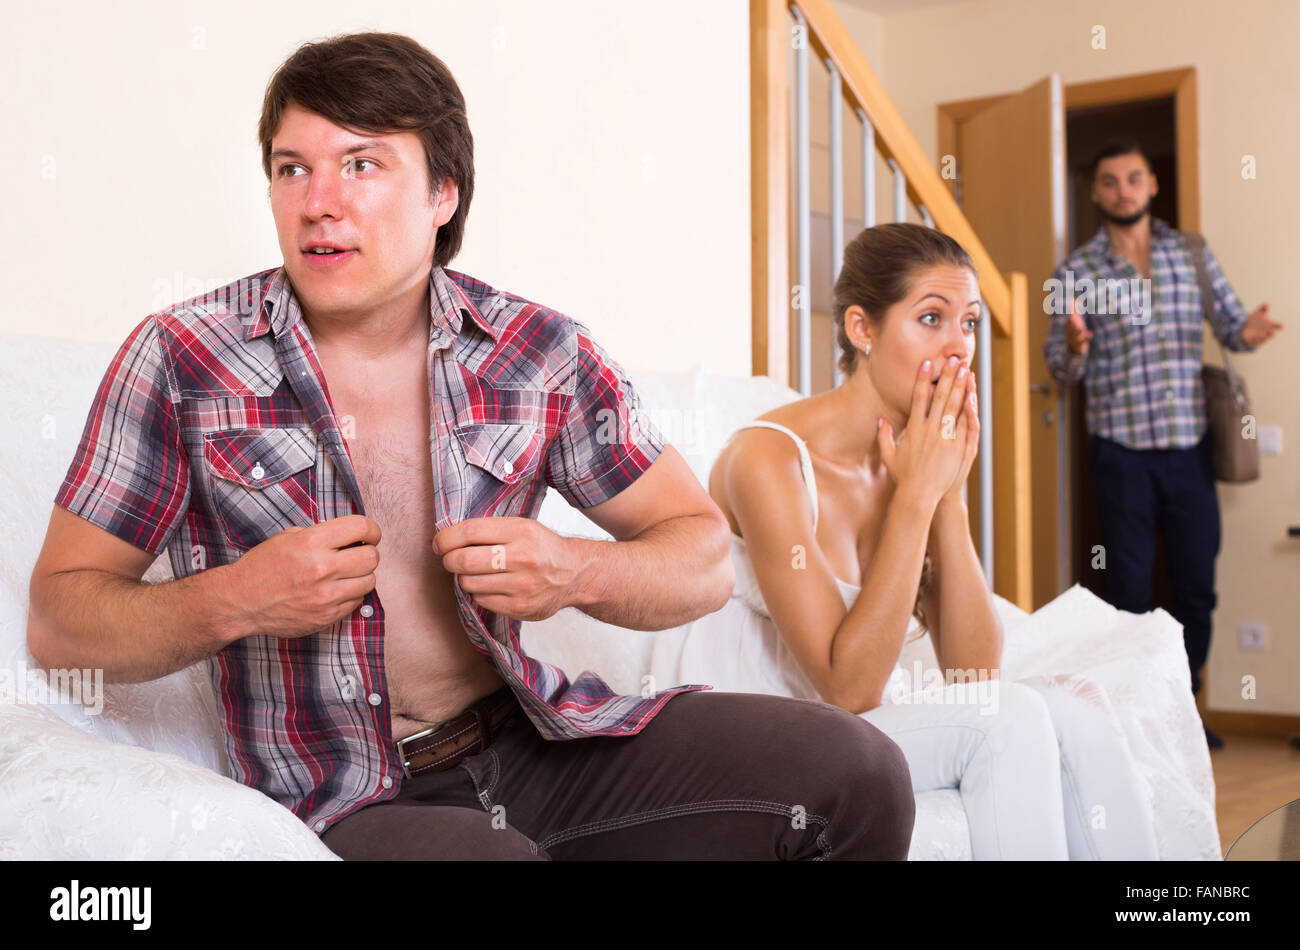 spouse coming home in wrong moment  and having affair with unfaithful woman - Stock Image